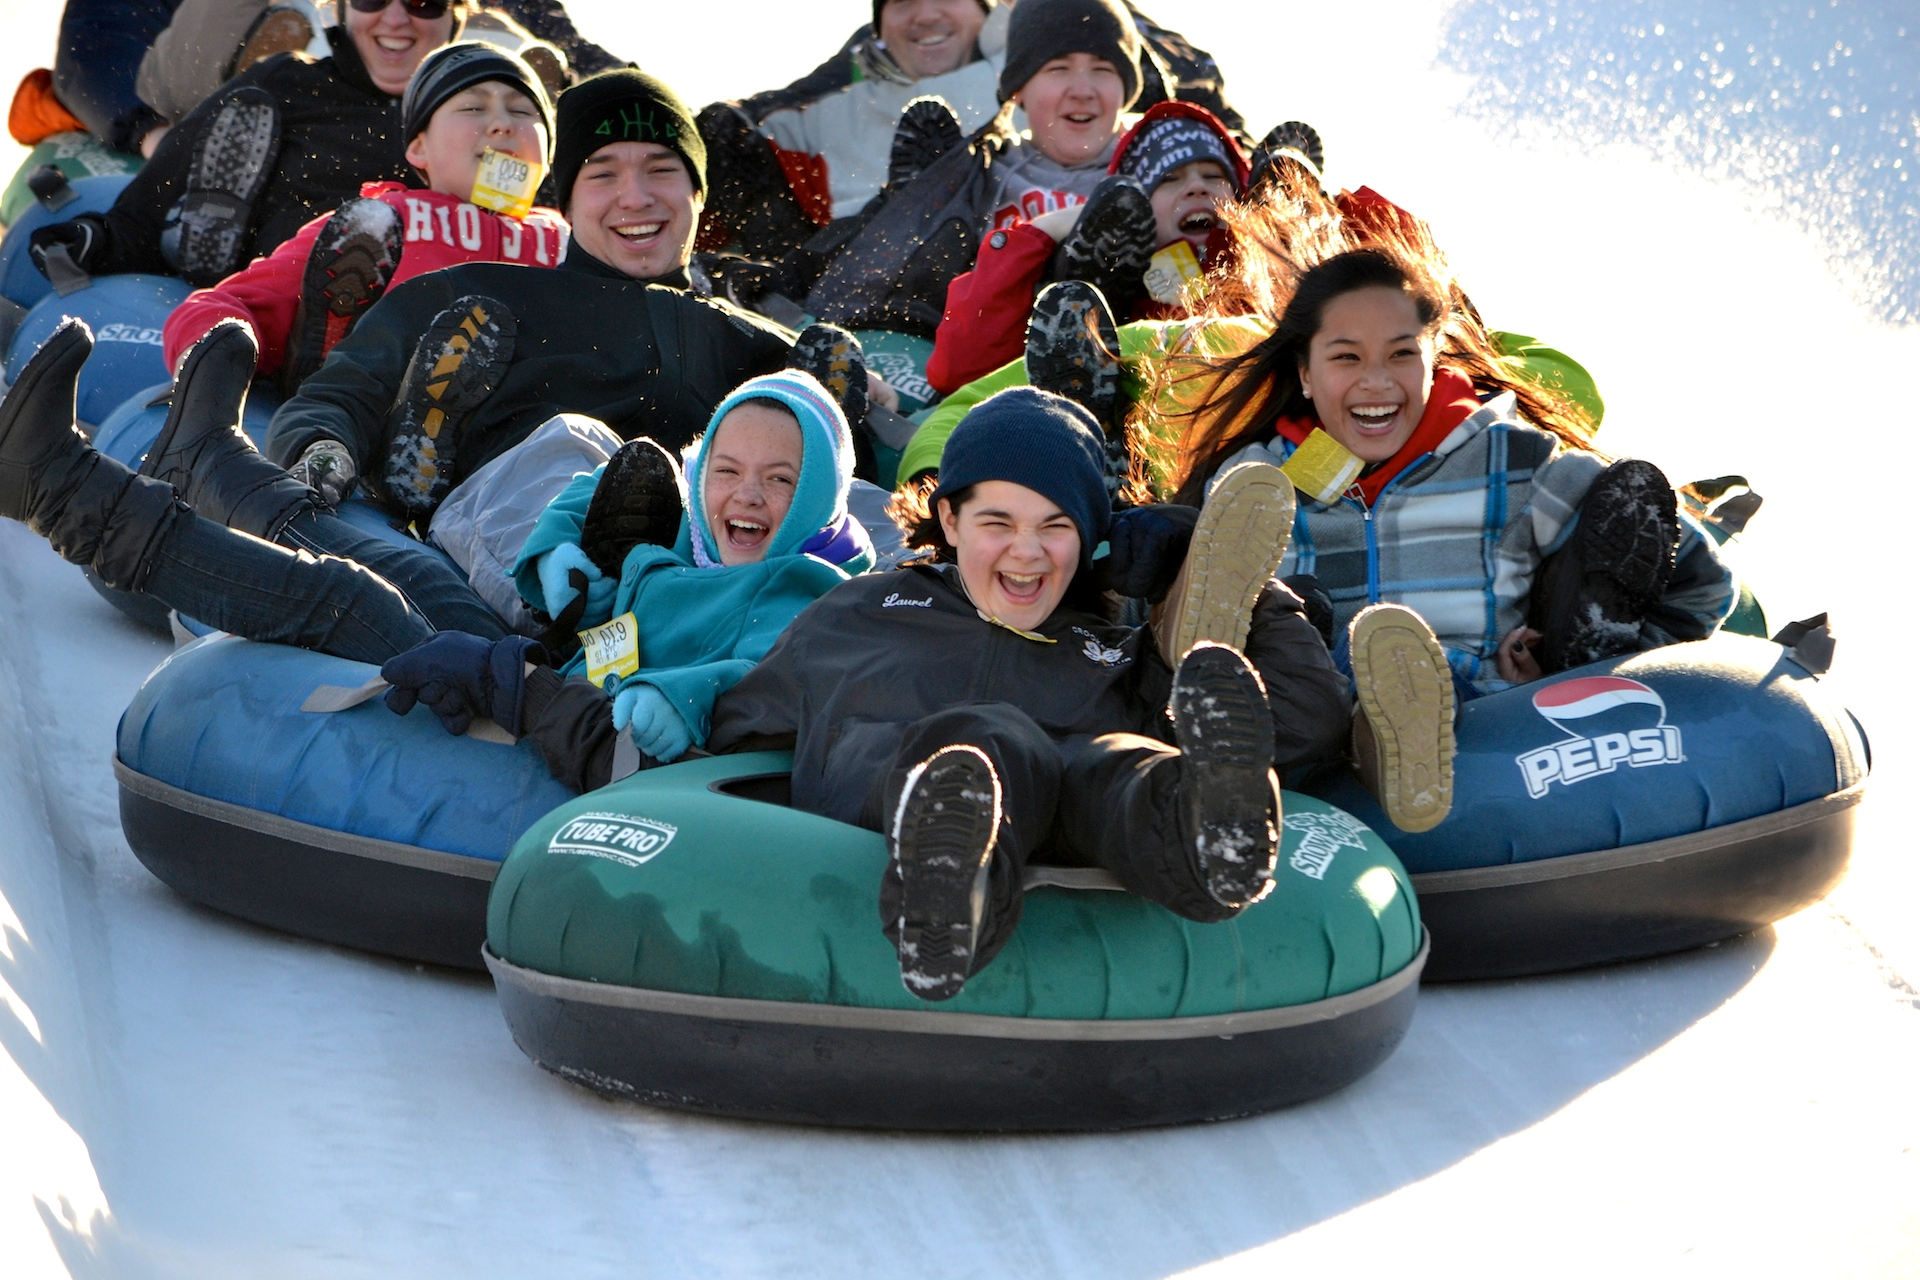 Vertical-Descent-Tubing-Park-At-Snow-Trails